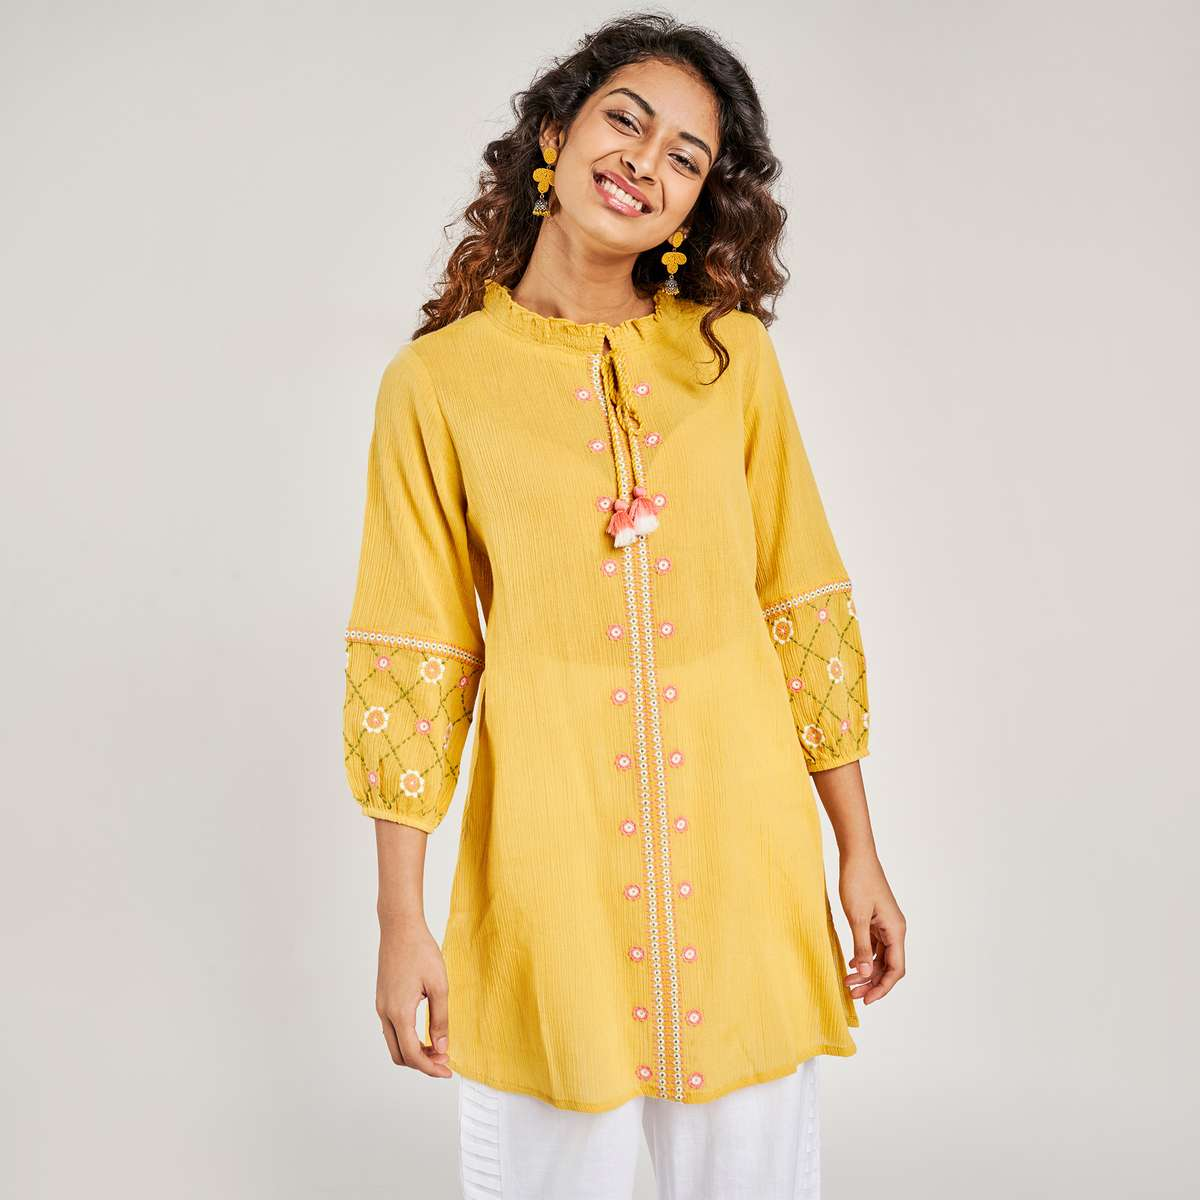 3.GLOBAL DESI Women Embroidered Tunic With Tassel Tie-Up